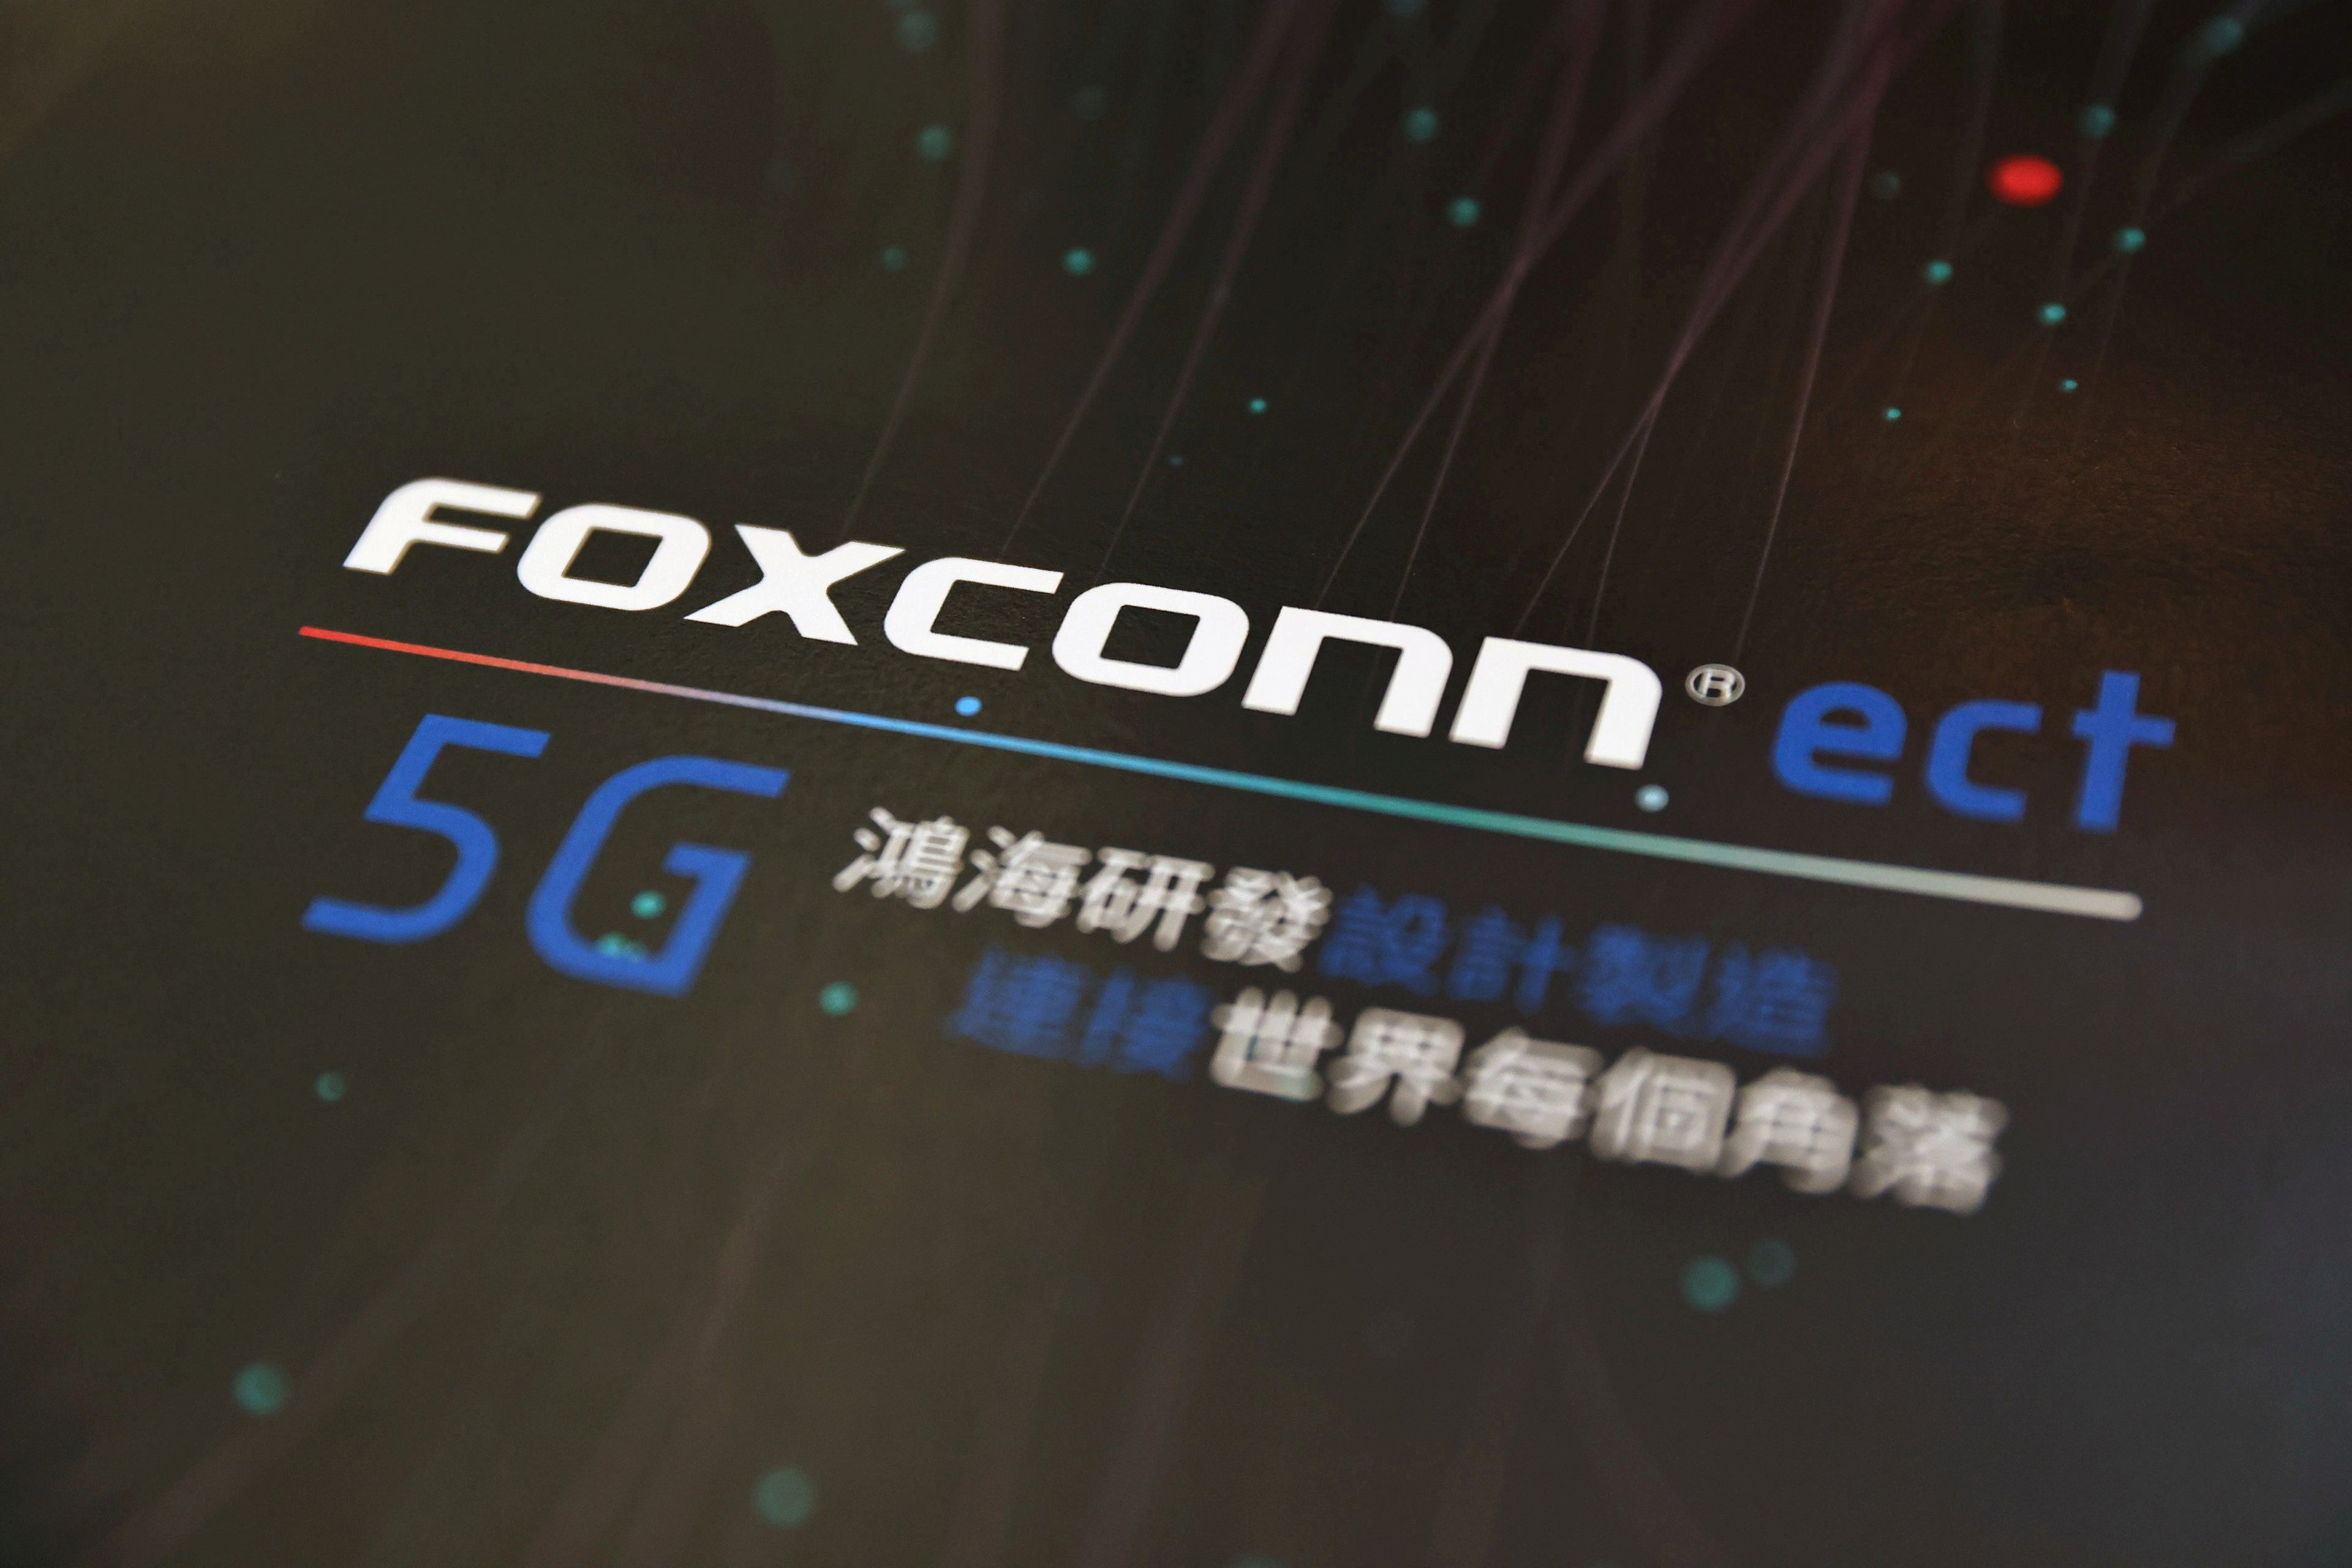 A poster with a logo of Foxconn is seen at the IEEE Global Communications Conference in Taipei. Taiwan, December 9, 2020. REUTERS/Ann Wang